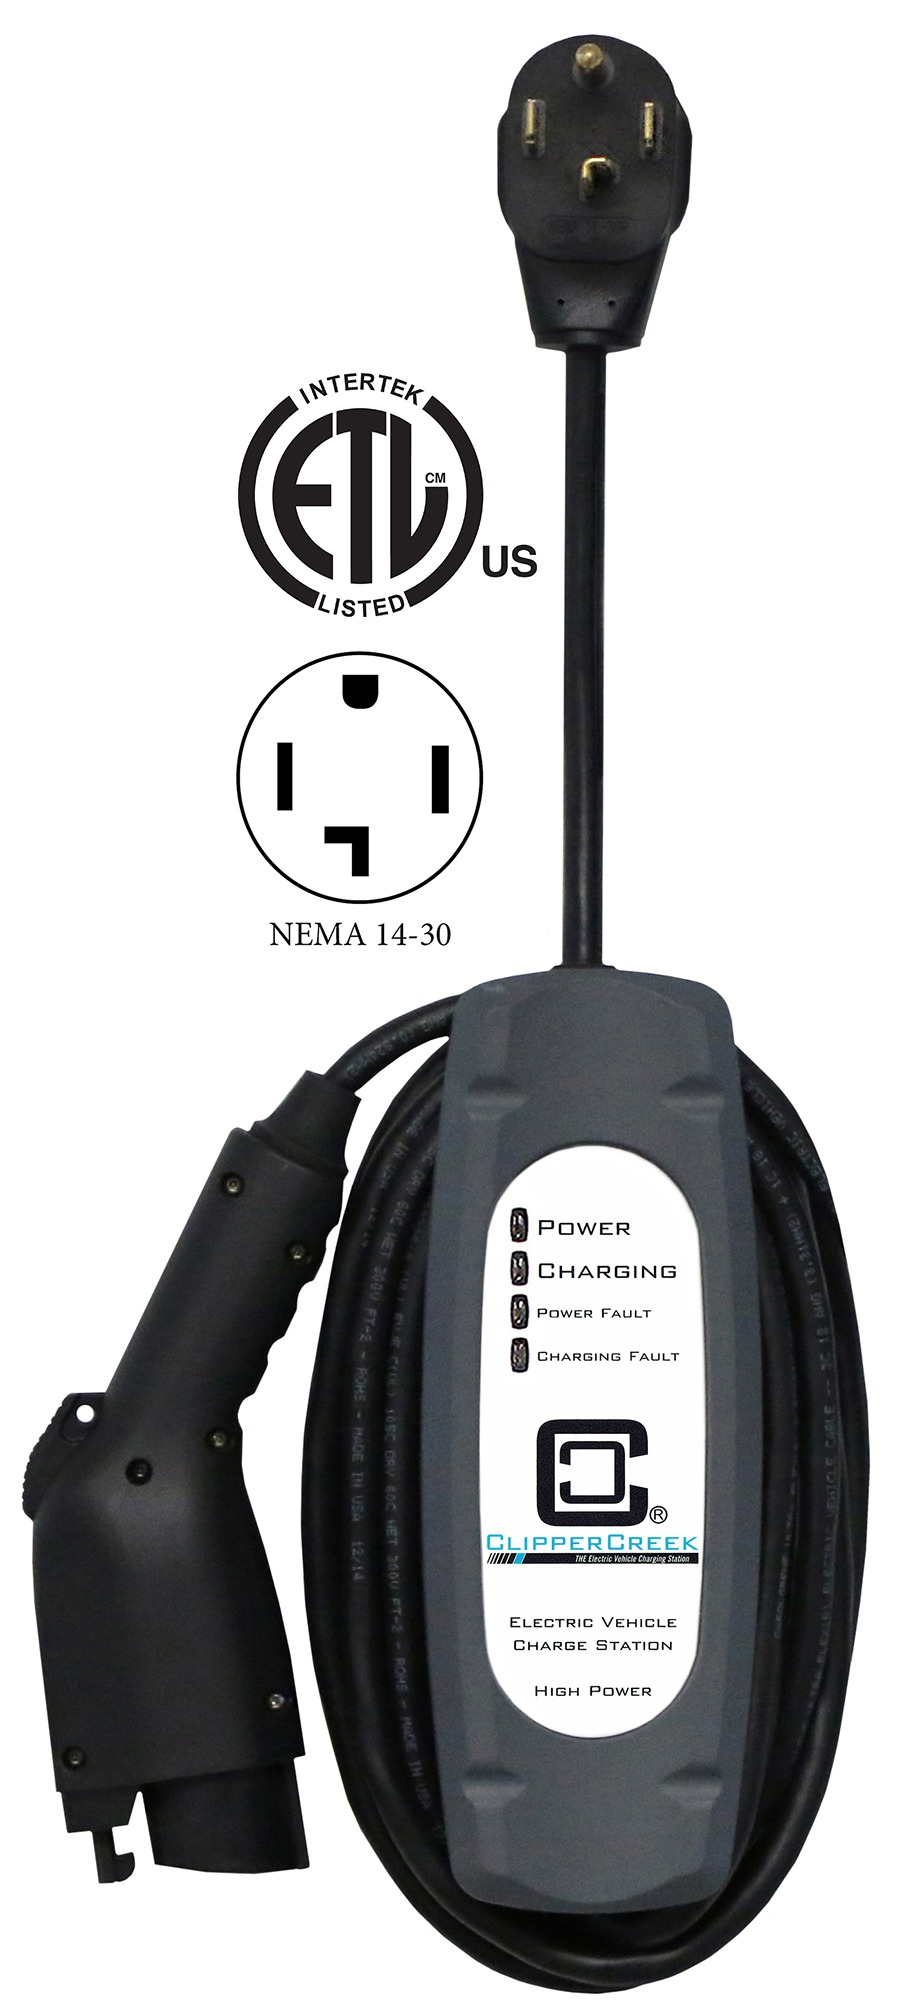 What Plugs Are Available On Ev Charging Stations Nema 6 20 Receptacle Wiring Diagram 220 50 50a Plug This Is Common For Welders Or Plasma Cutters Its Installed Onto A Dedicated Circuit To Match The Rating Of